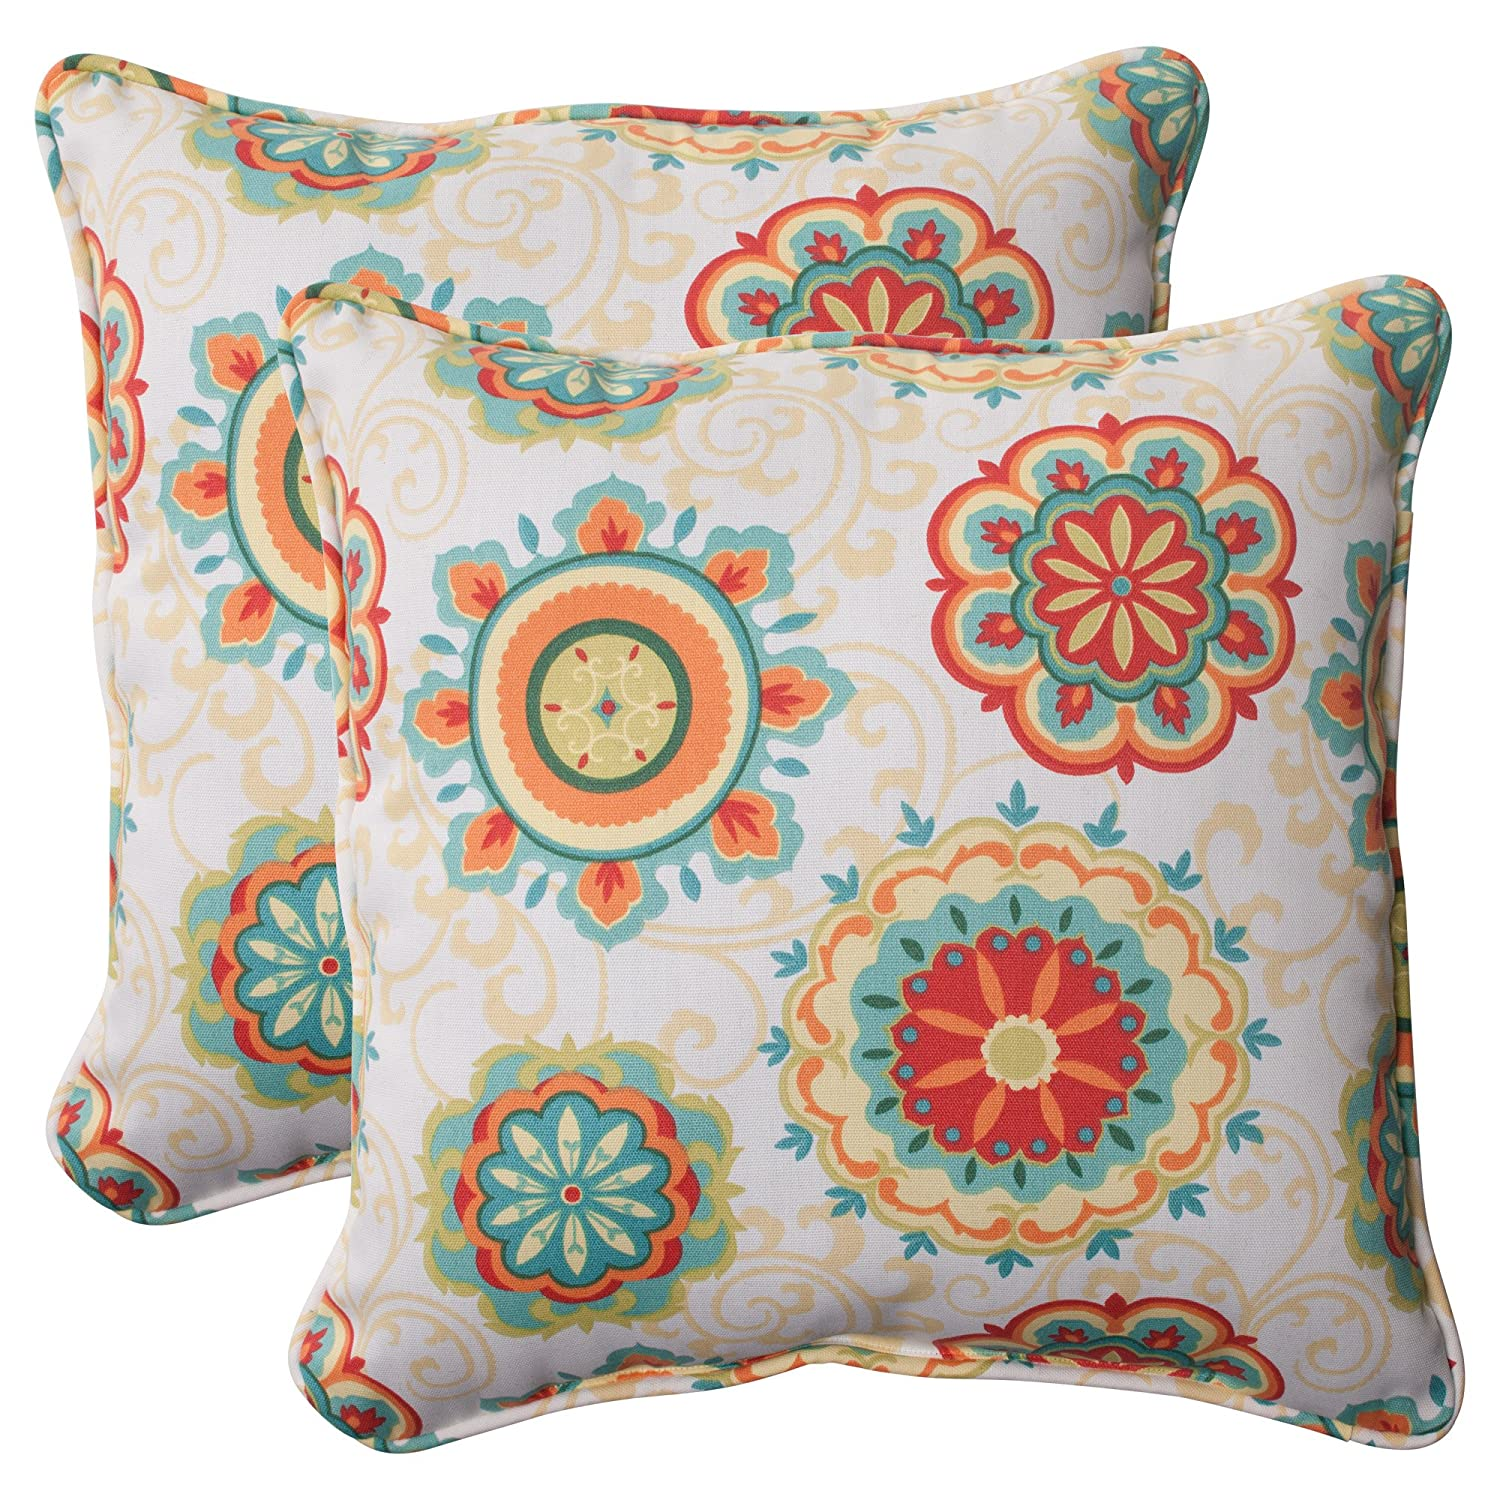 Large Decorative Outdoor Pillows : Aqua Bedding Comforter Sets and Quilts Sale ? Ease Bedding with Style